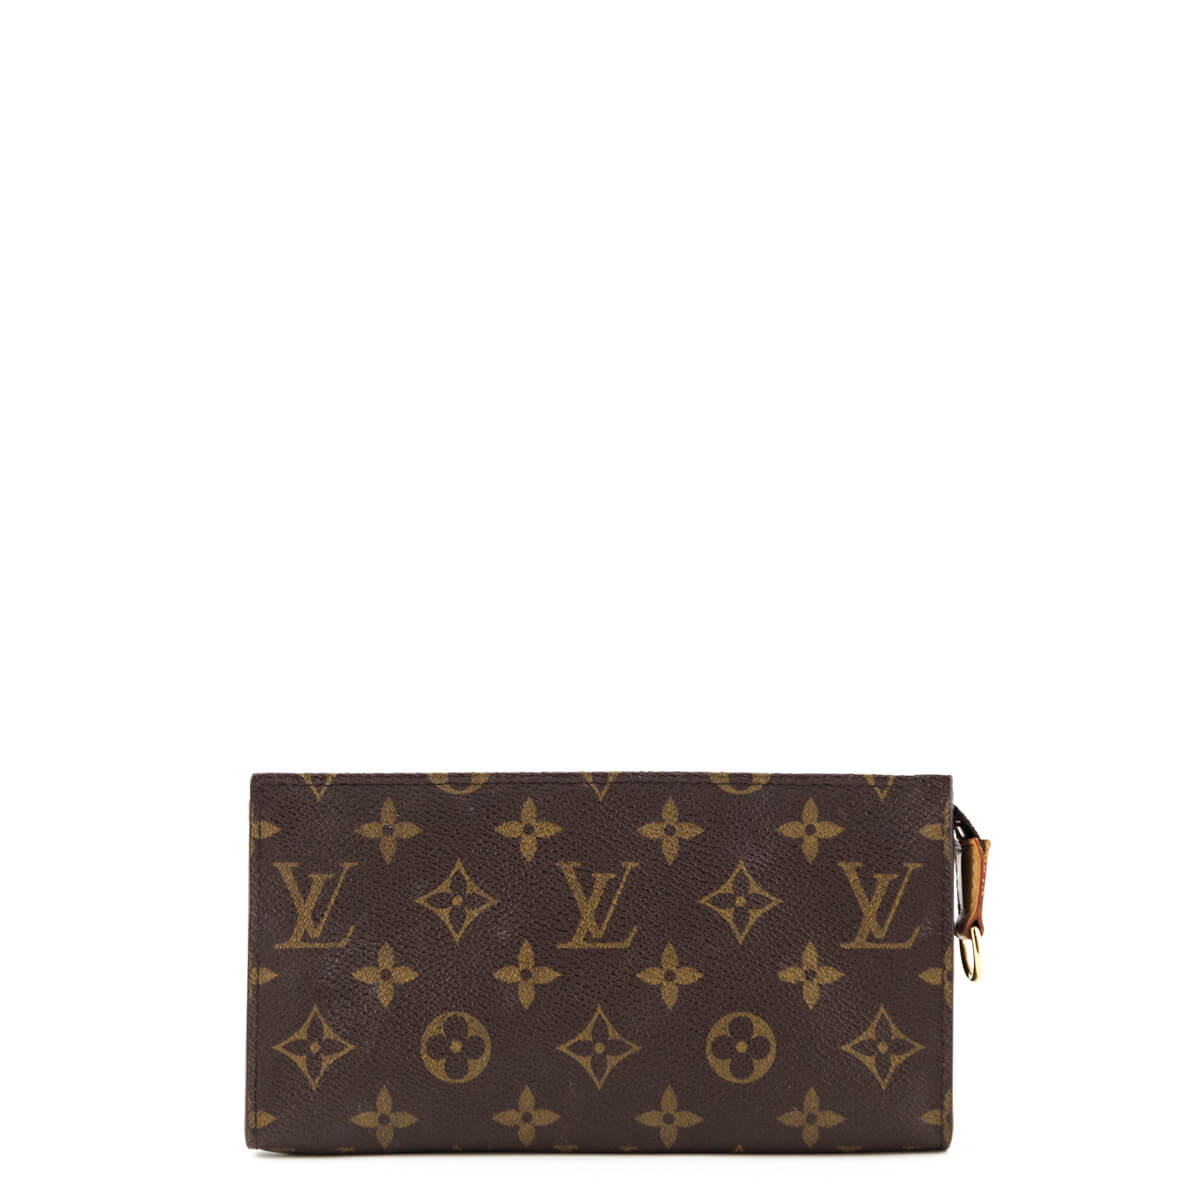 aece852589 Louis Vuitton Monogram Zip Pouch - LOVE that BAG - Preowned Authentic  Designer Handbags ...